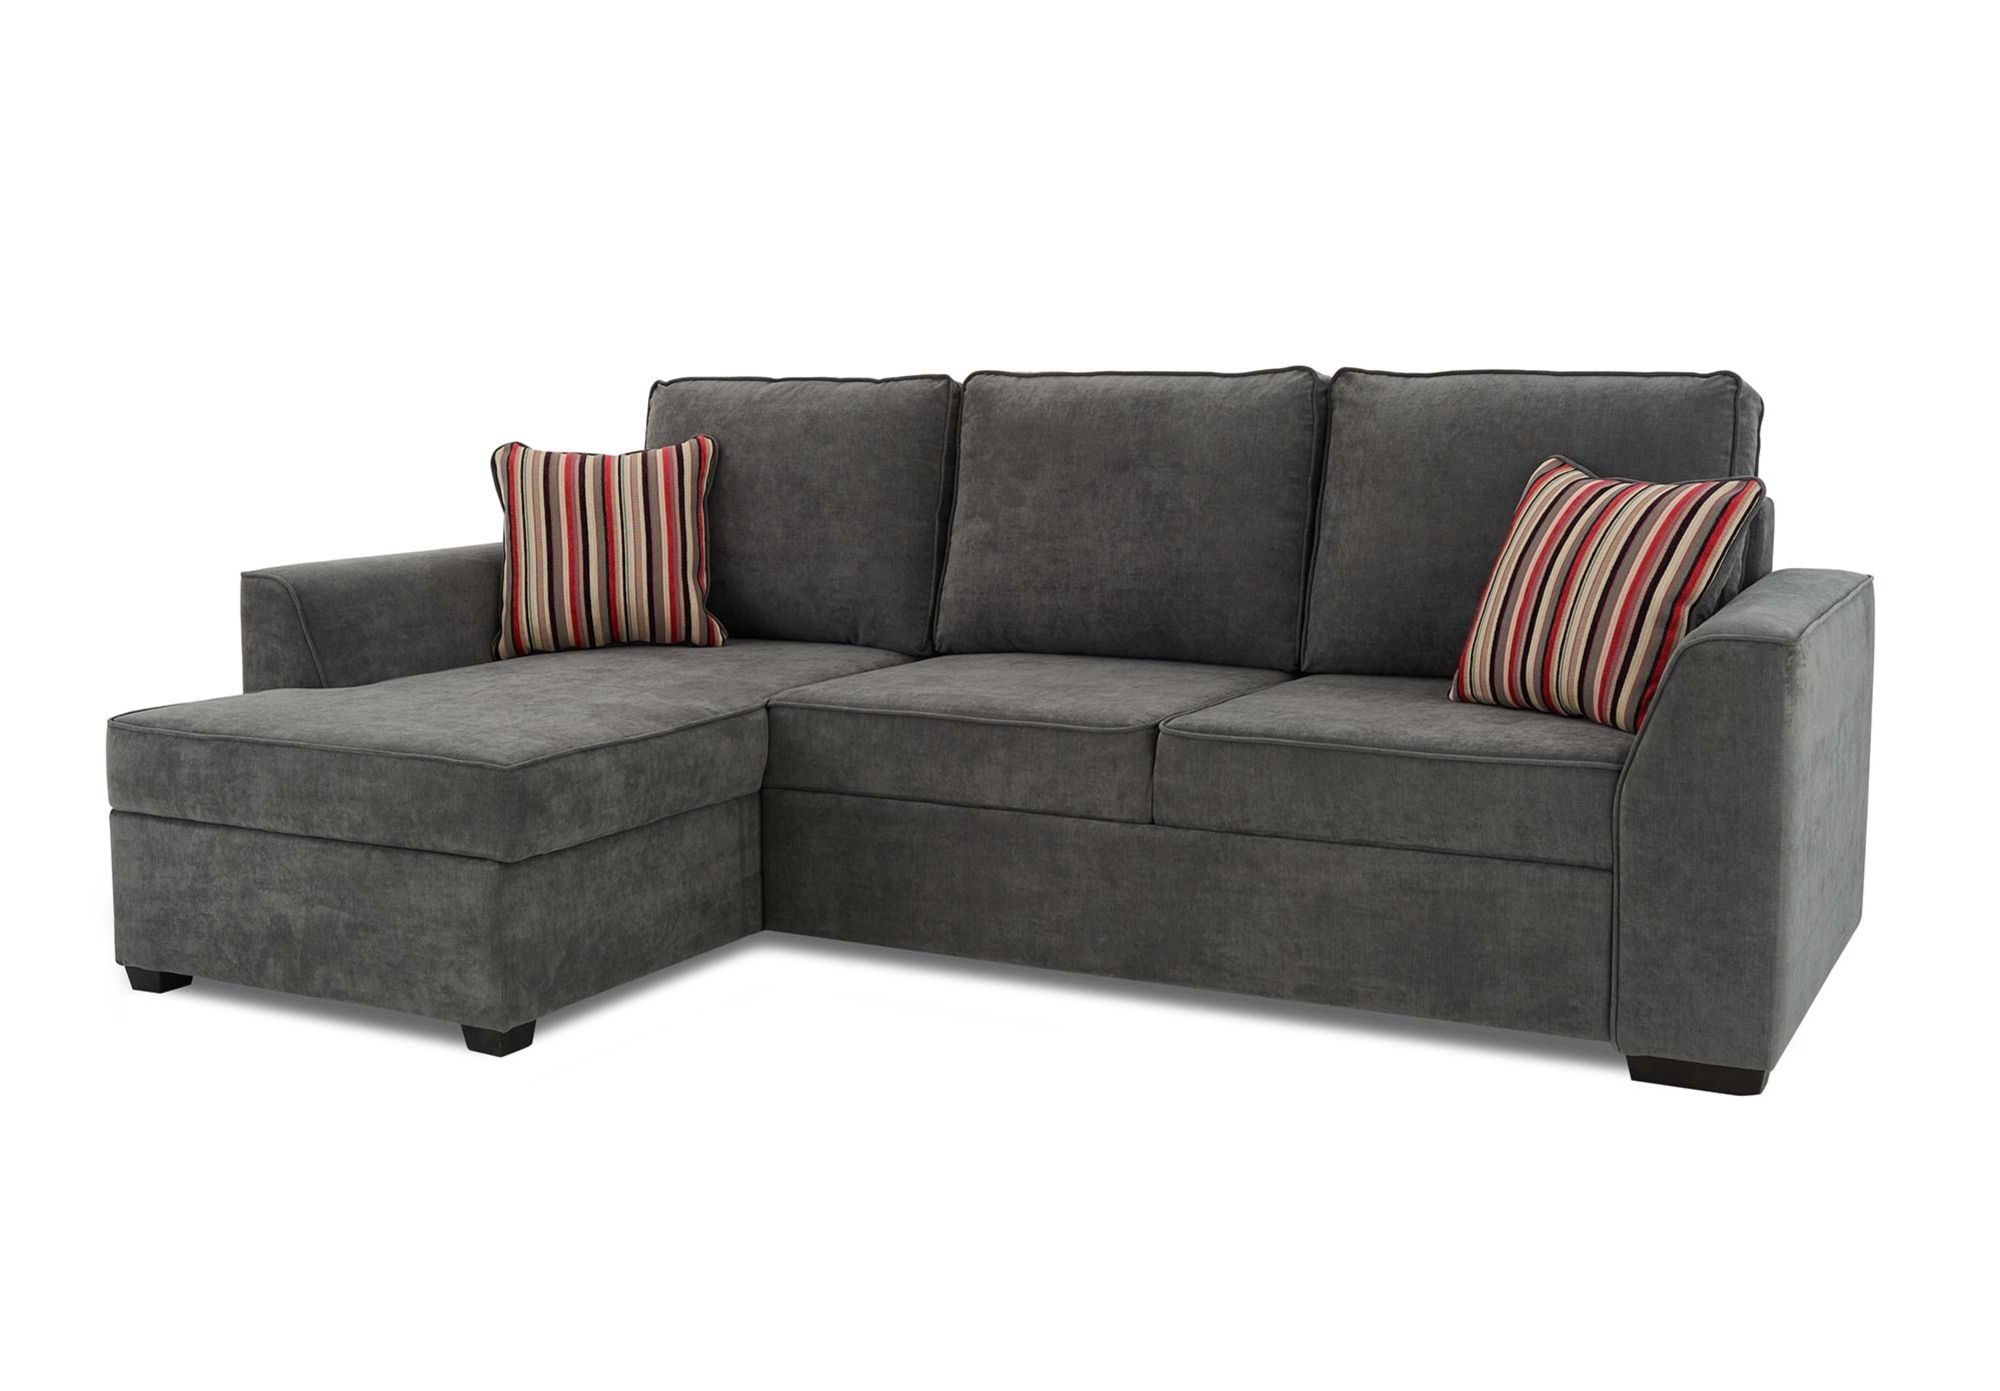 2 Seater Sofa Bed Furniture Village Affordable Modern Lhf 3 Chaise With Storage Studio